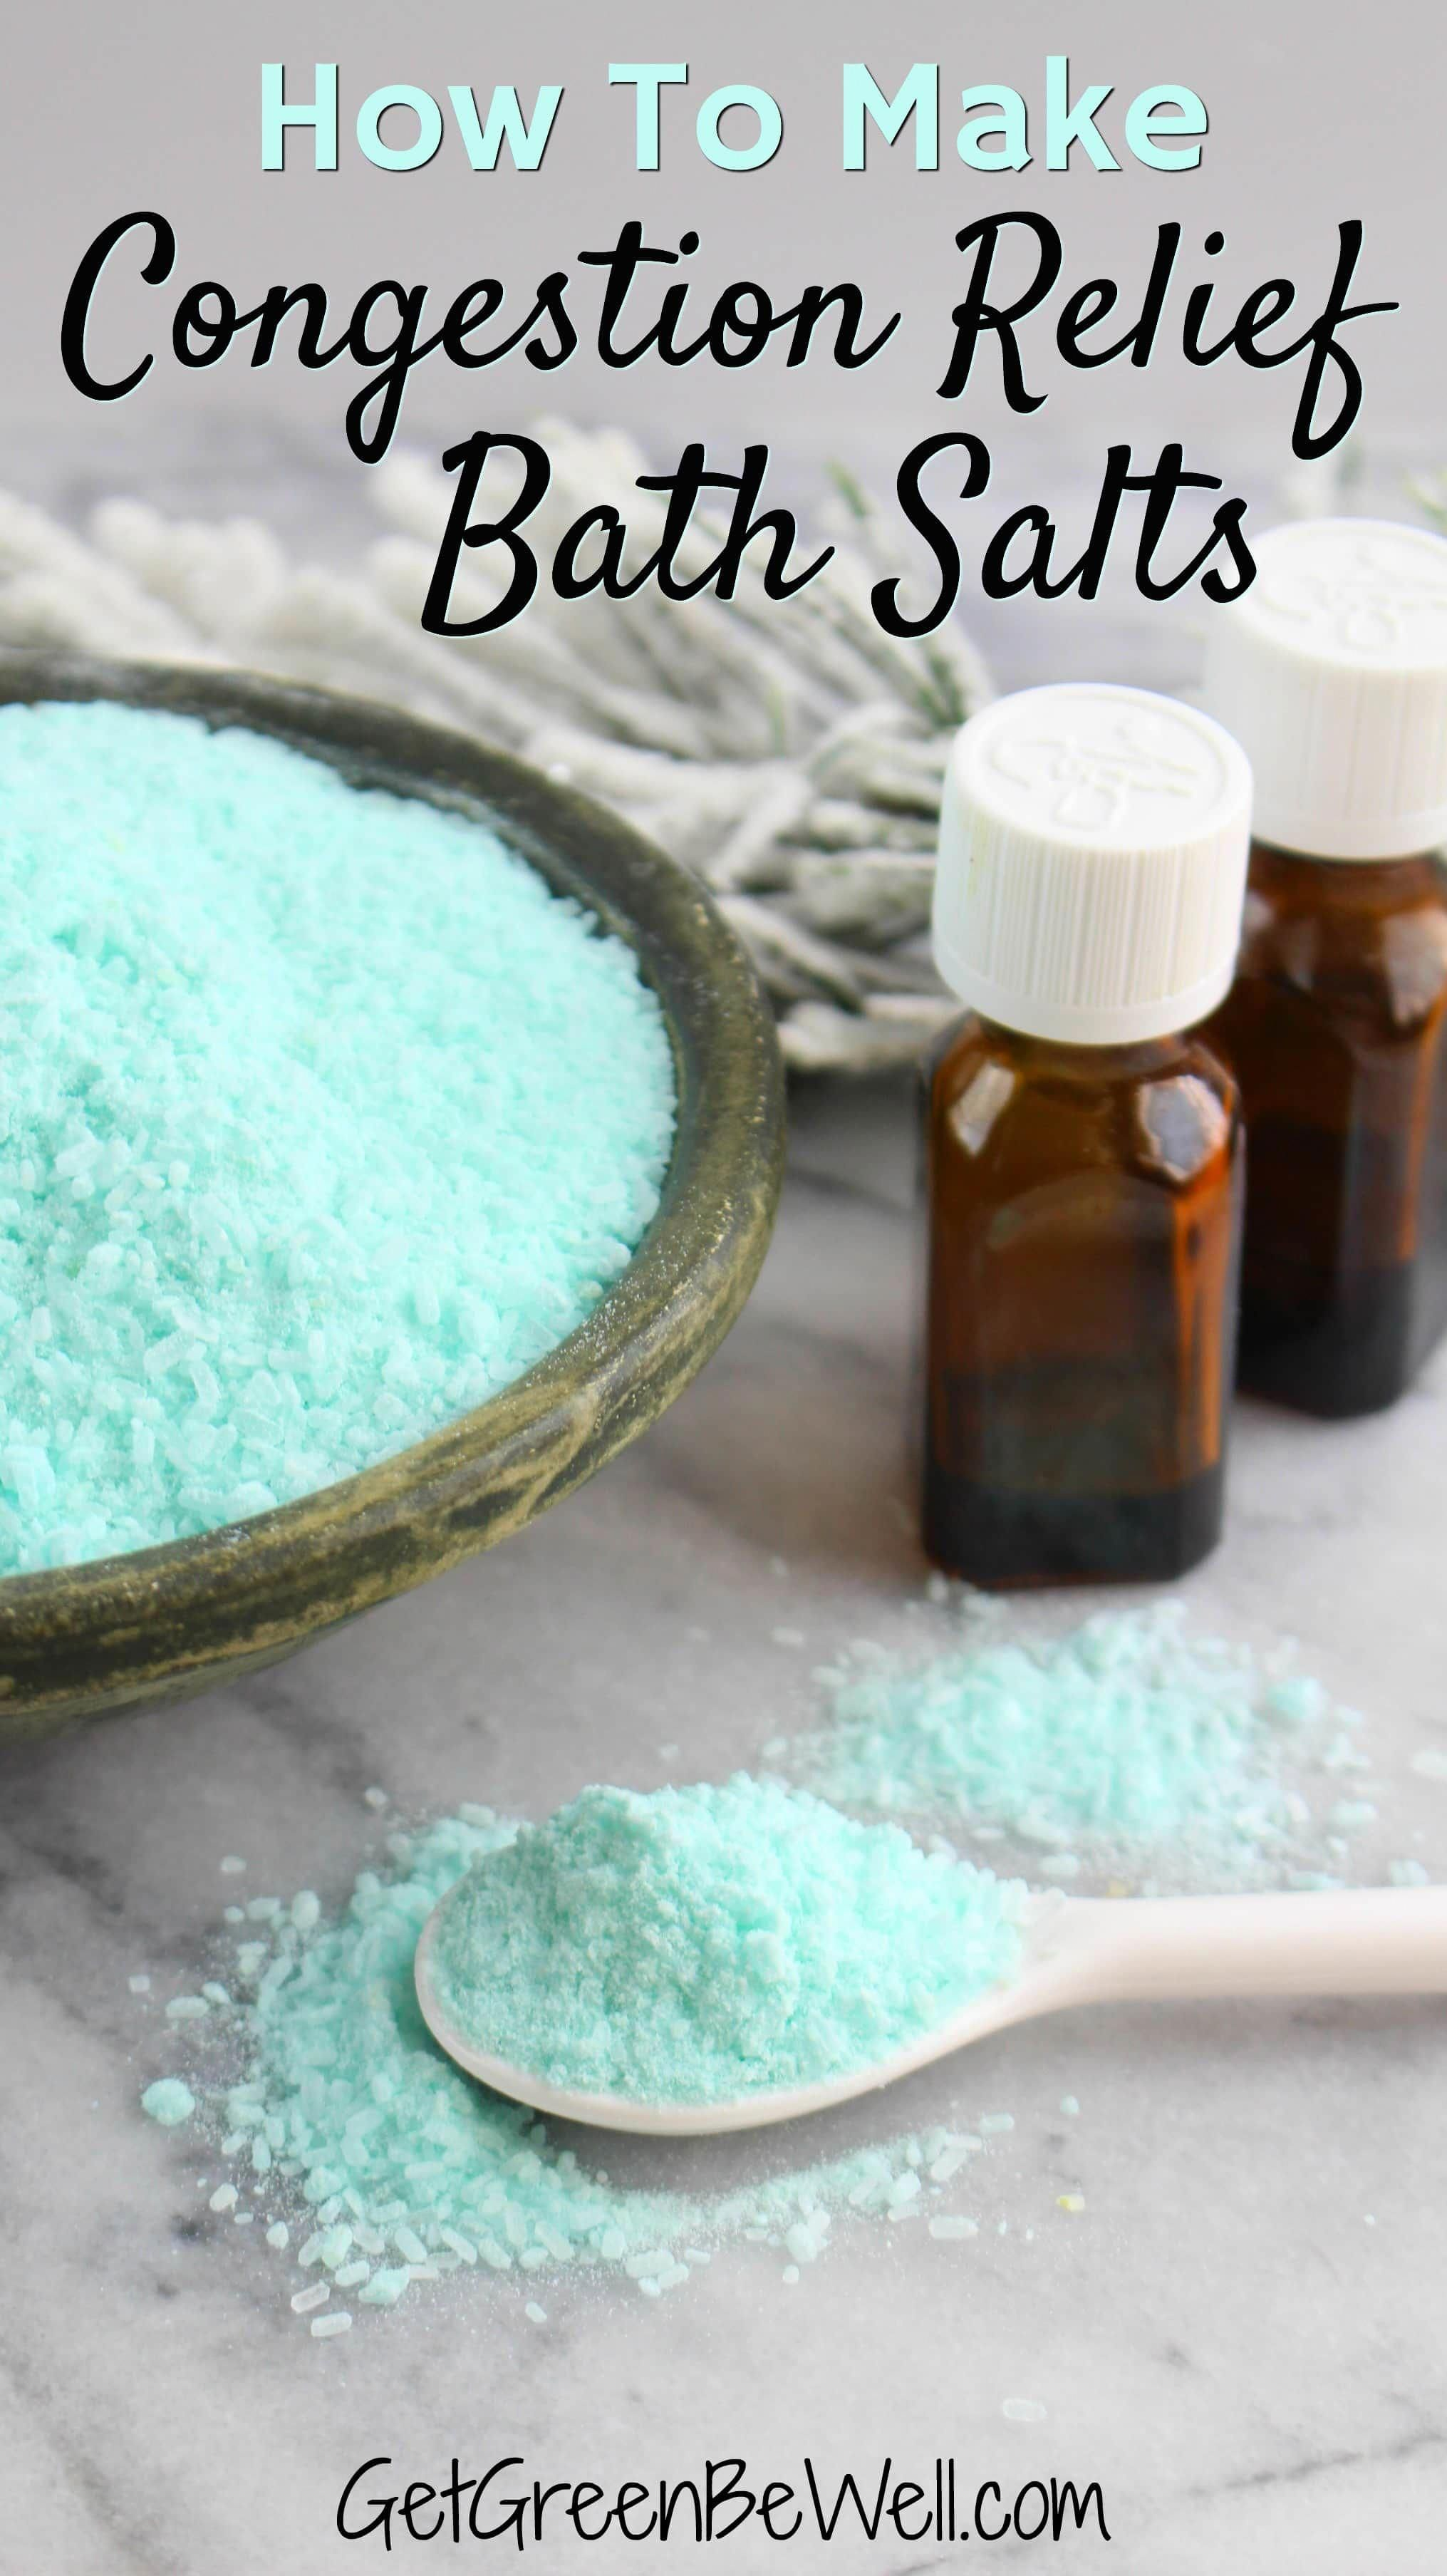 Breathe easier right now by adding these bath salts to a hot bath. With natural vapors from essential oils, plus powerful detoxing properties, you could speed healing and feel better with this DIY Sinus Congestion Relief Bath Salts Recipe made from ingredients you can find at your drugstore! #naturalremedies #natural #naturalliving #greenliving #allnatural #coldweather #DailyHealthTips